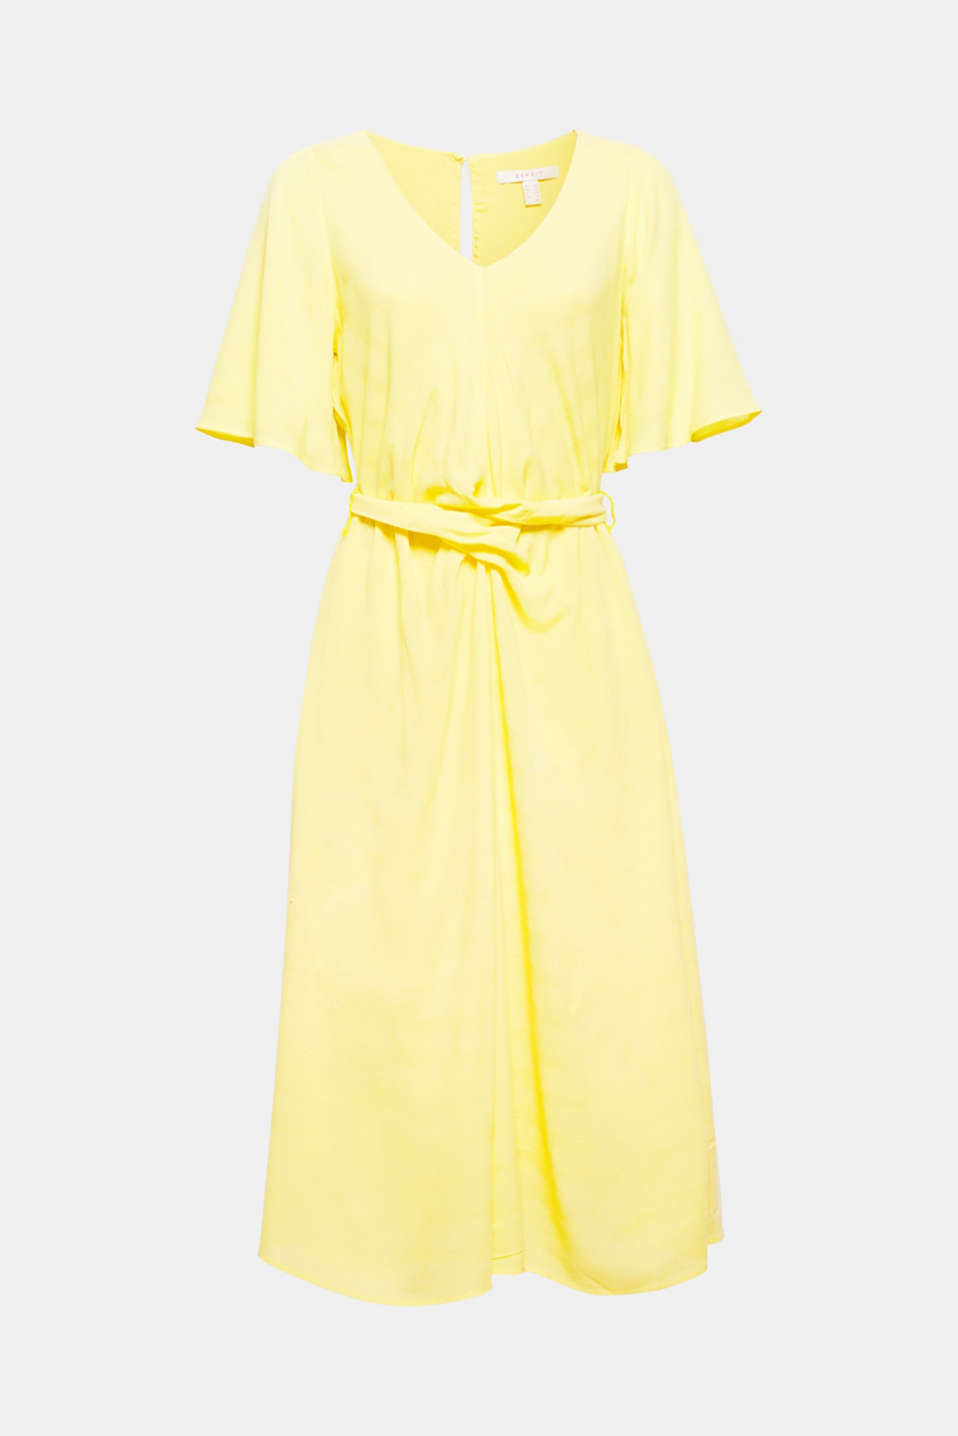 This stylish summer dress combines a wonderful colour, fabric with a summery texture, fashionable cap sleeves and a waist-accentuating sash! Must-have!